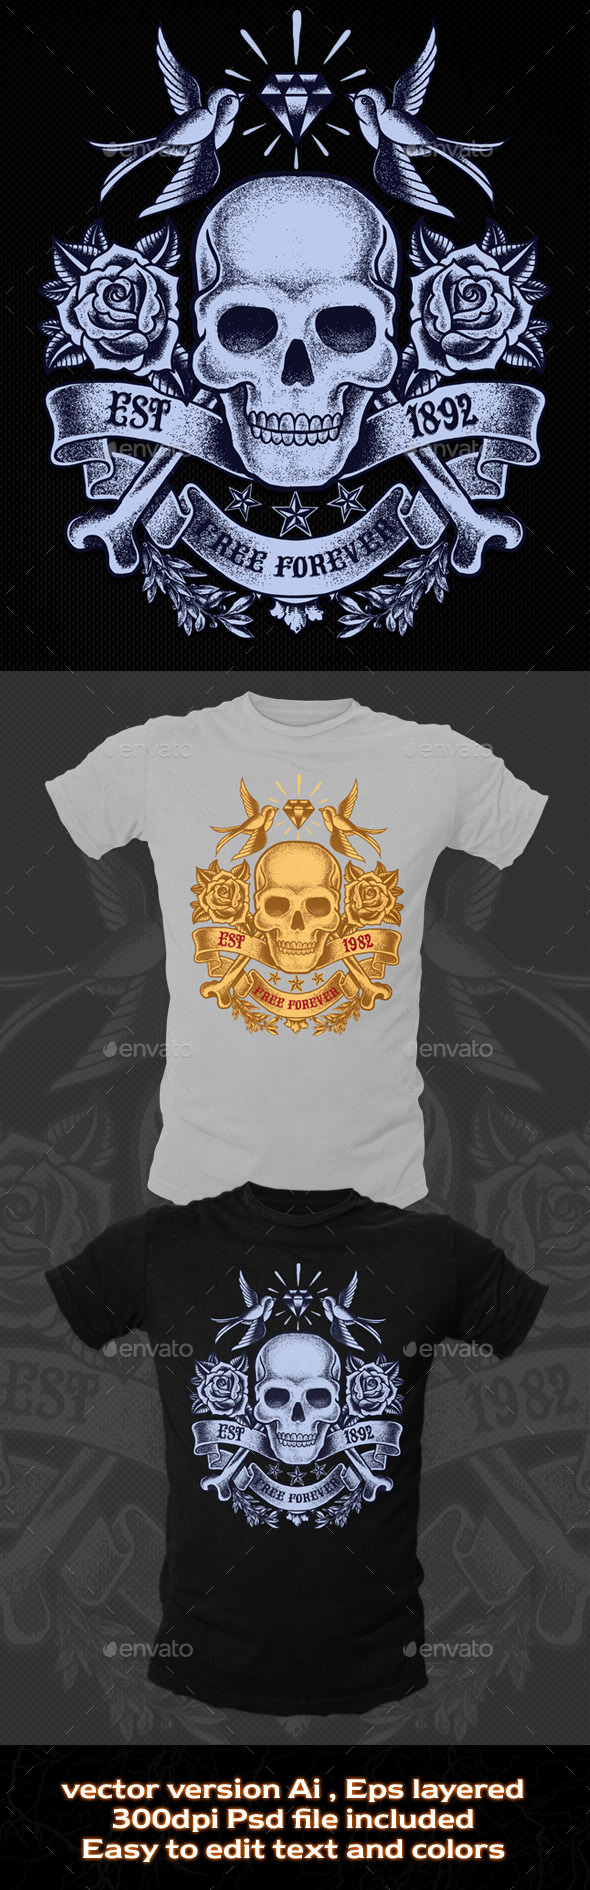 Old Skull T-shirt Template - Grunge Designs